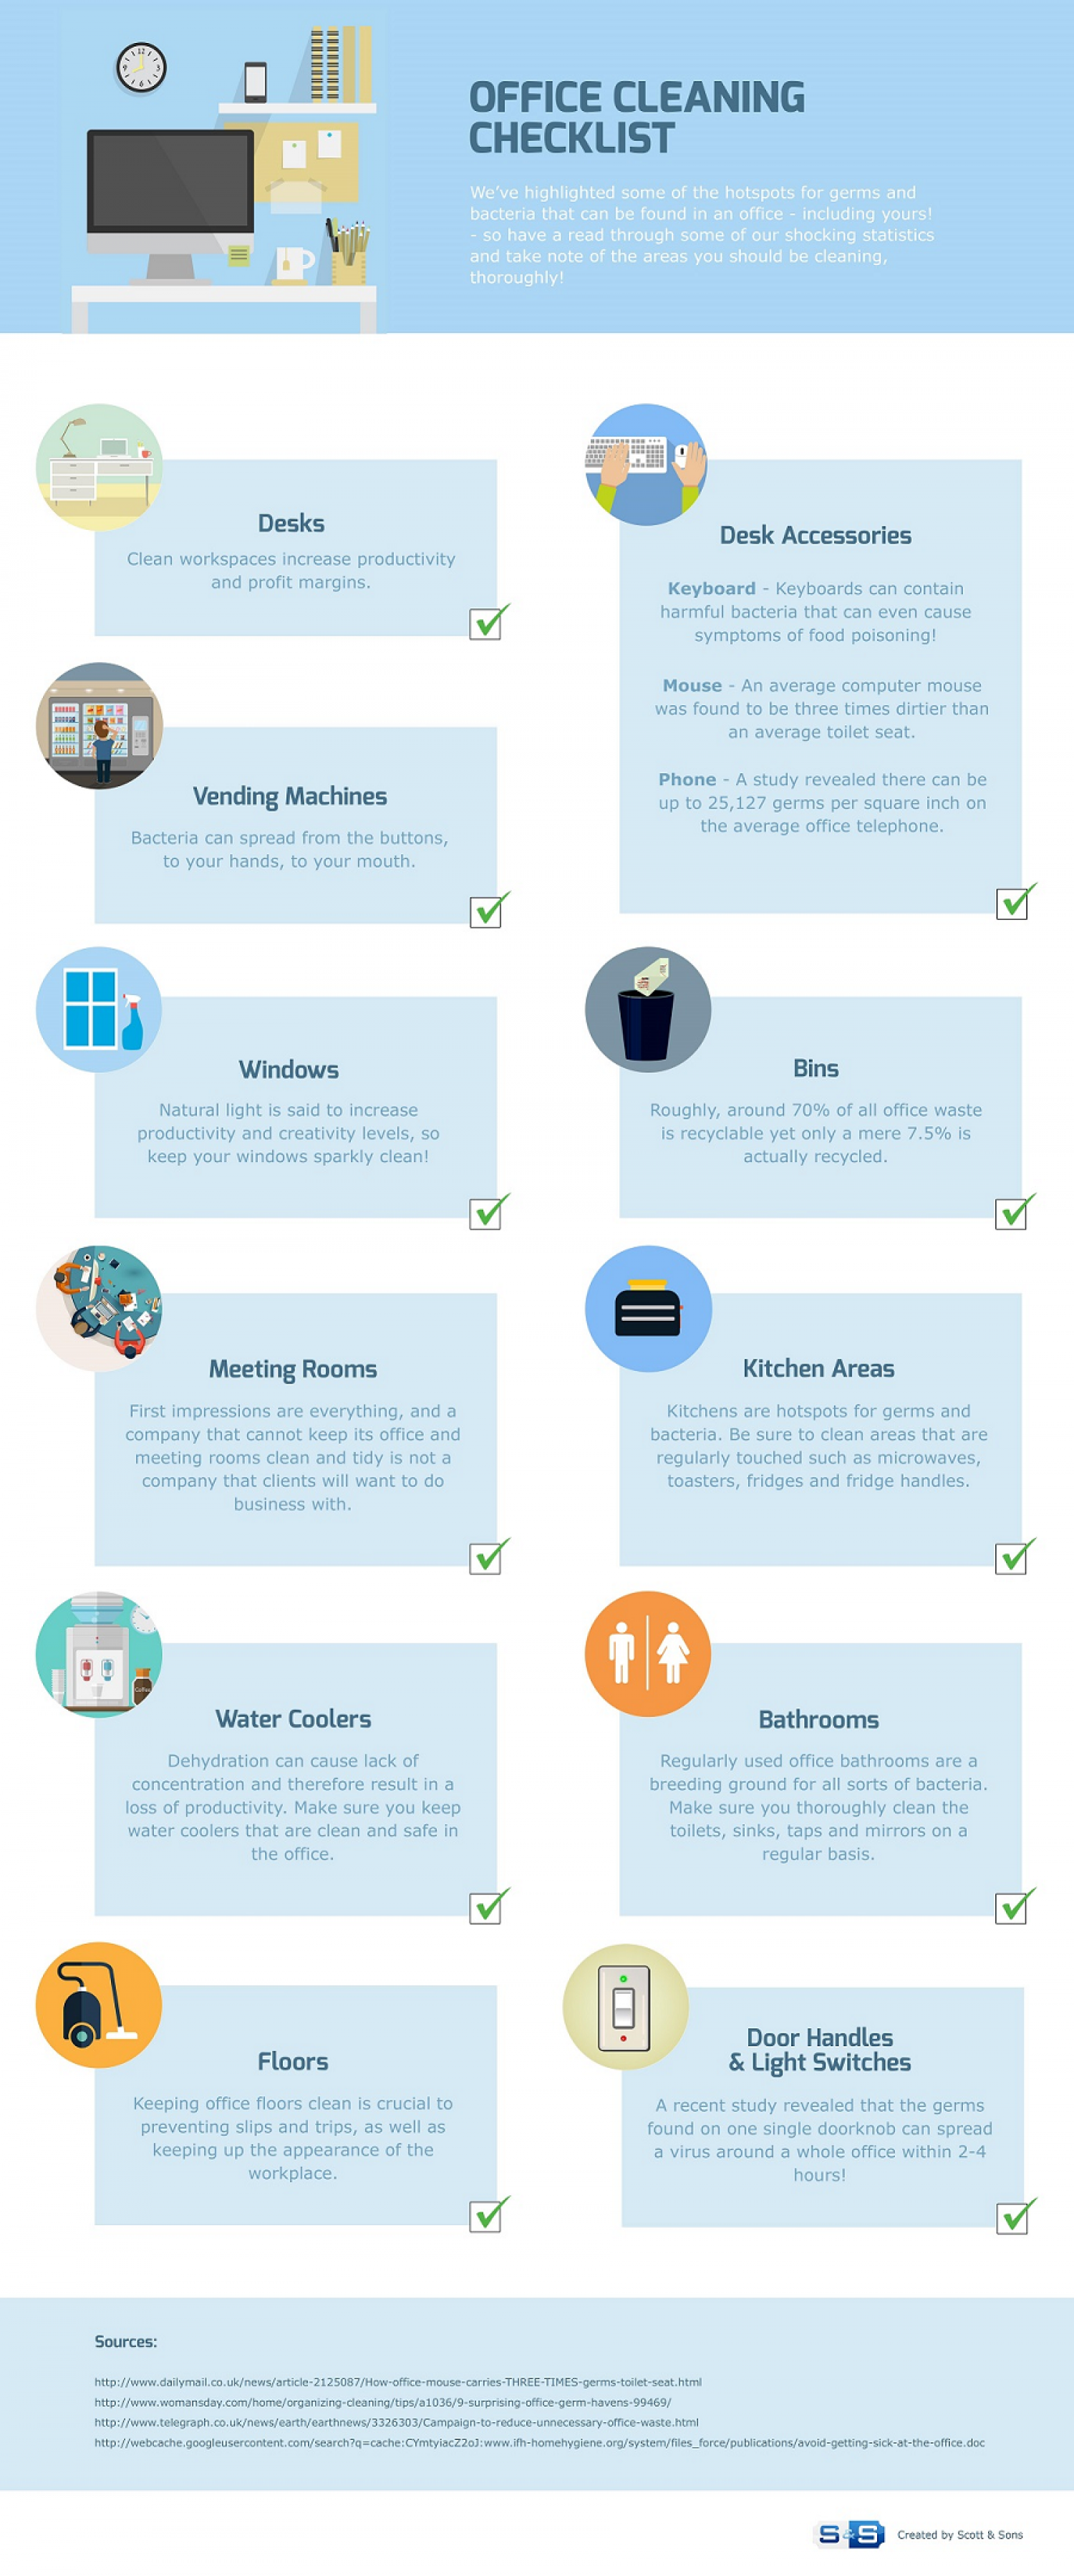 Office Cleaning Checklist | Visual.ly